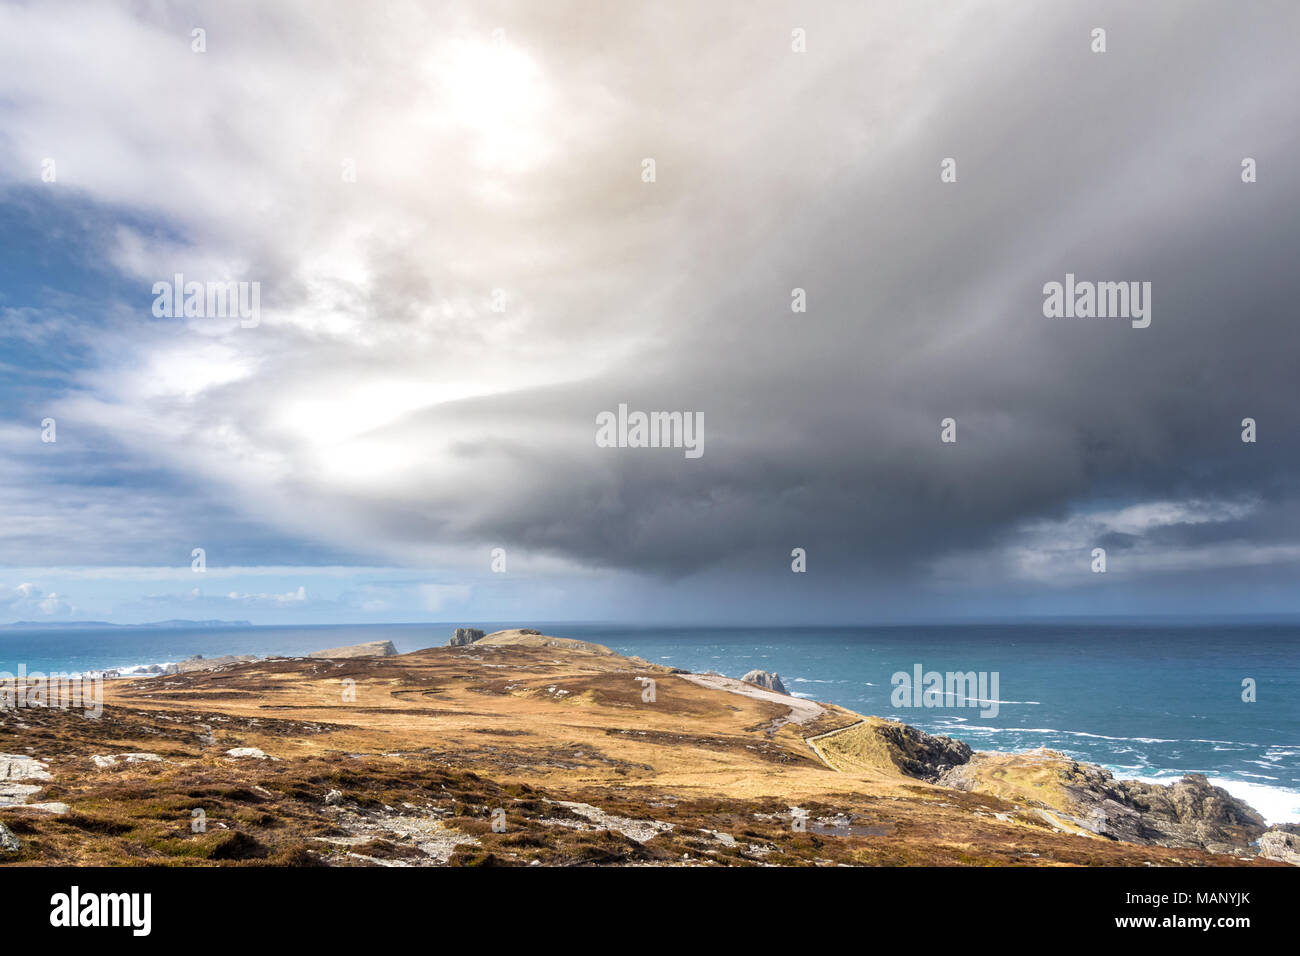 Ominous rain cloud coming in from the Atlantic Ocean.  This was taken at Malin Head, County Donegal Ireland. - Stock Image